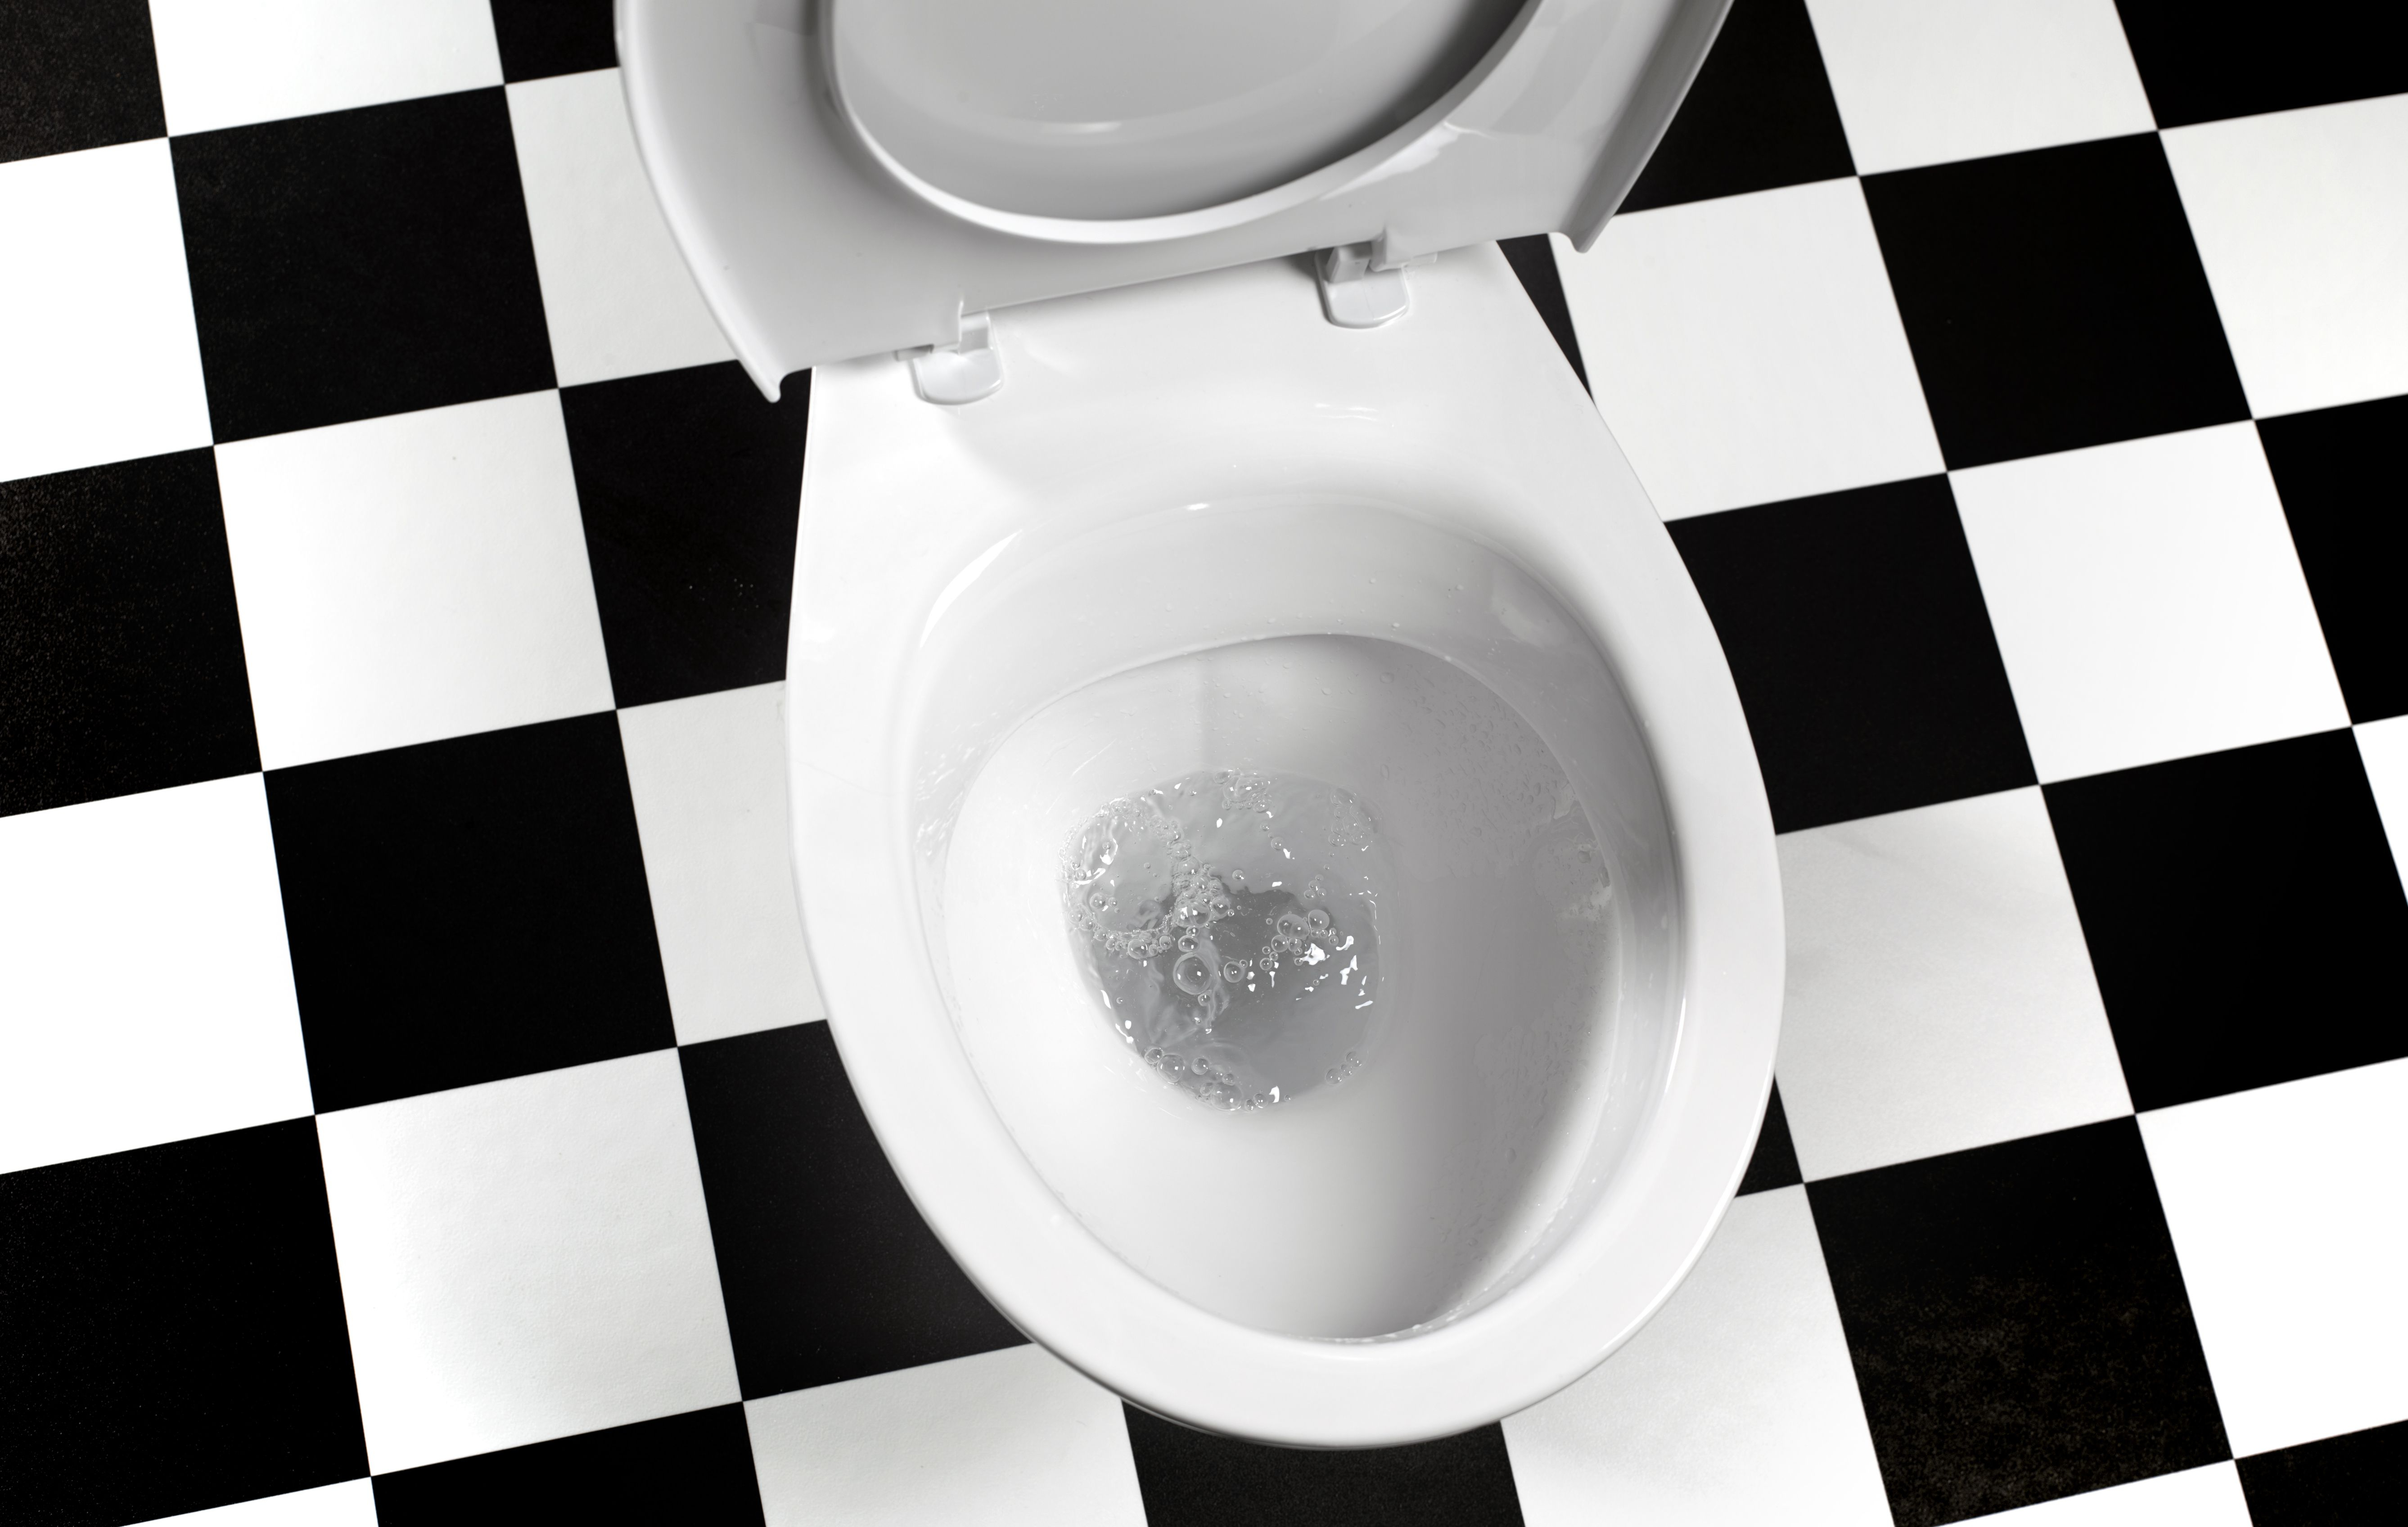 This Company Wants Photos of Your Poop. For Science.